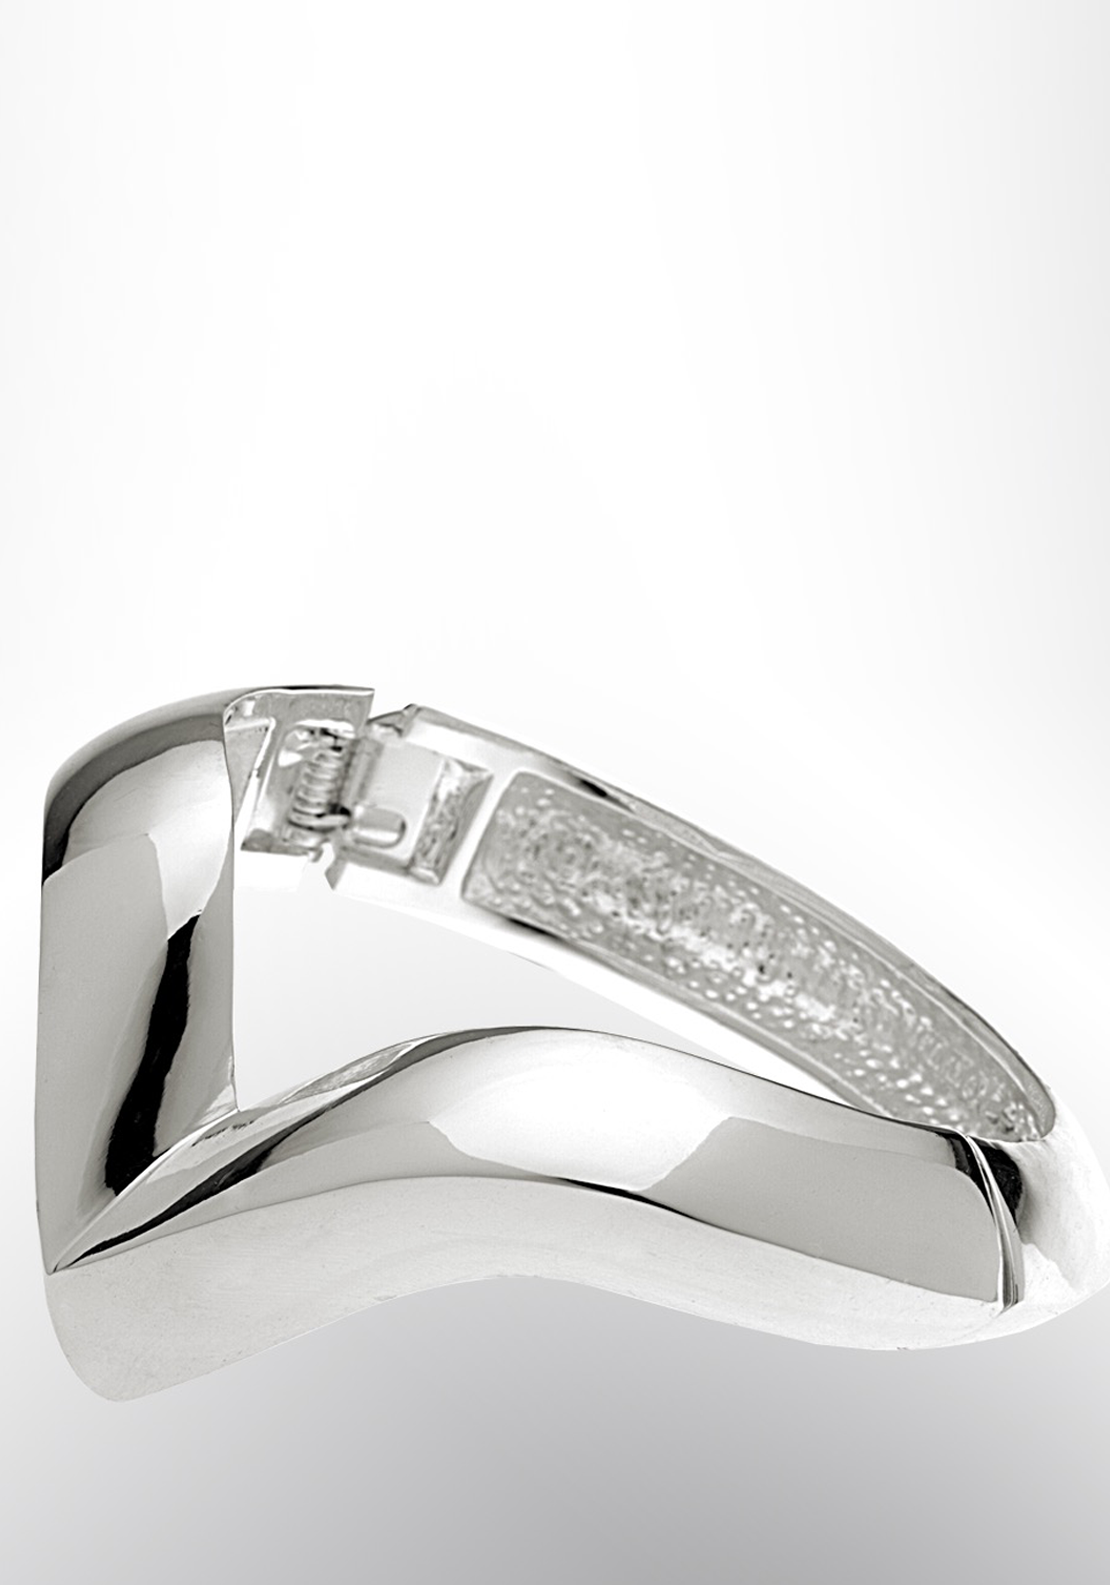 Newbridge eShe Magnetic Closure Bangle, Silver